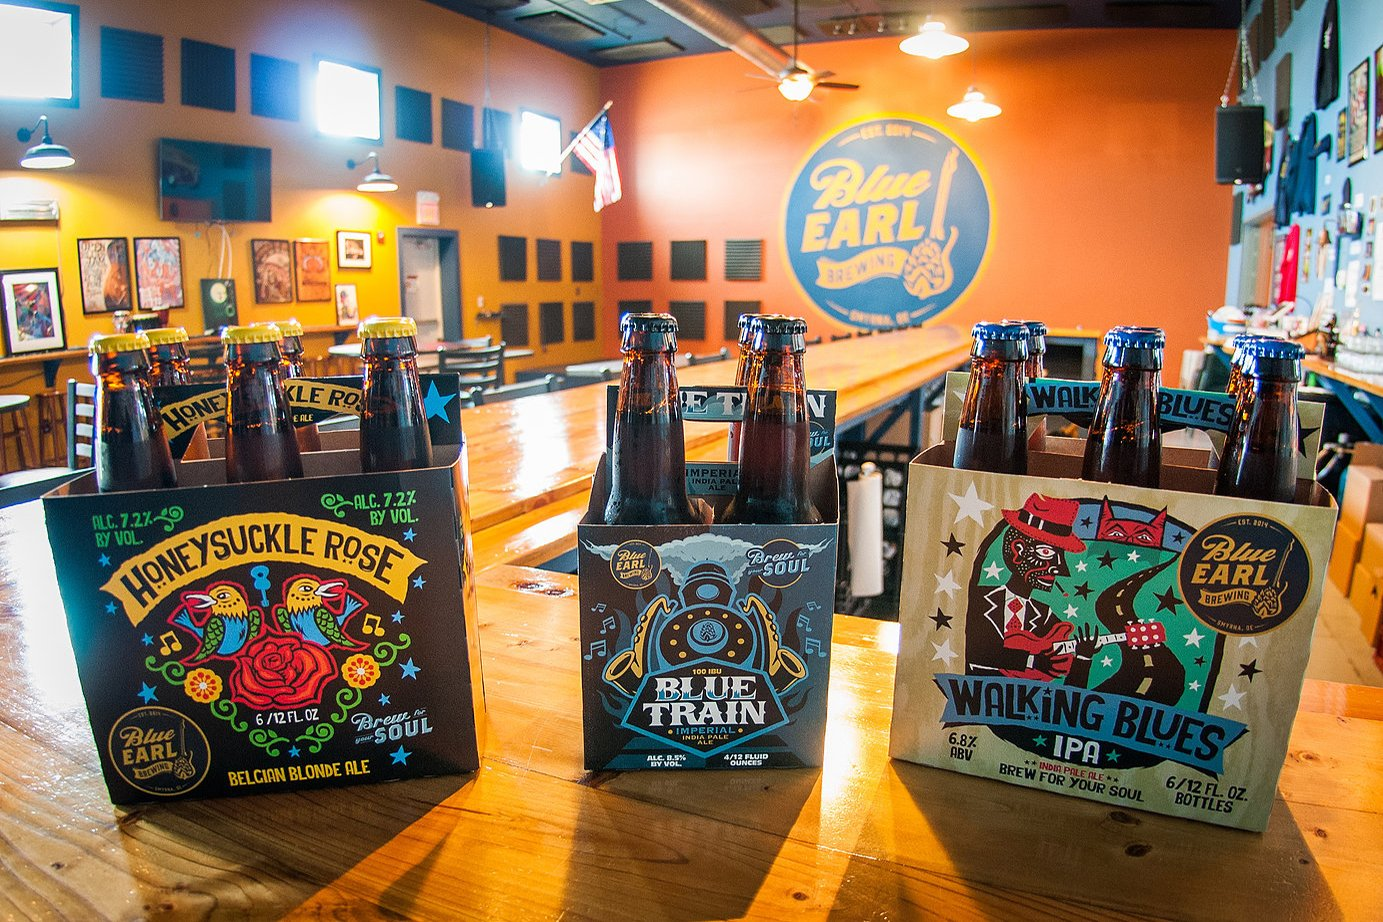 Some of Blue Earl's package goods. A 4 pack of Blue Train, a 6 pack of Honeysuckle Rose, as well as Walking Blues IPA.